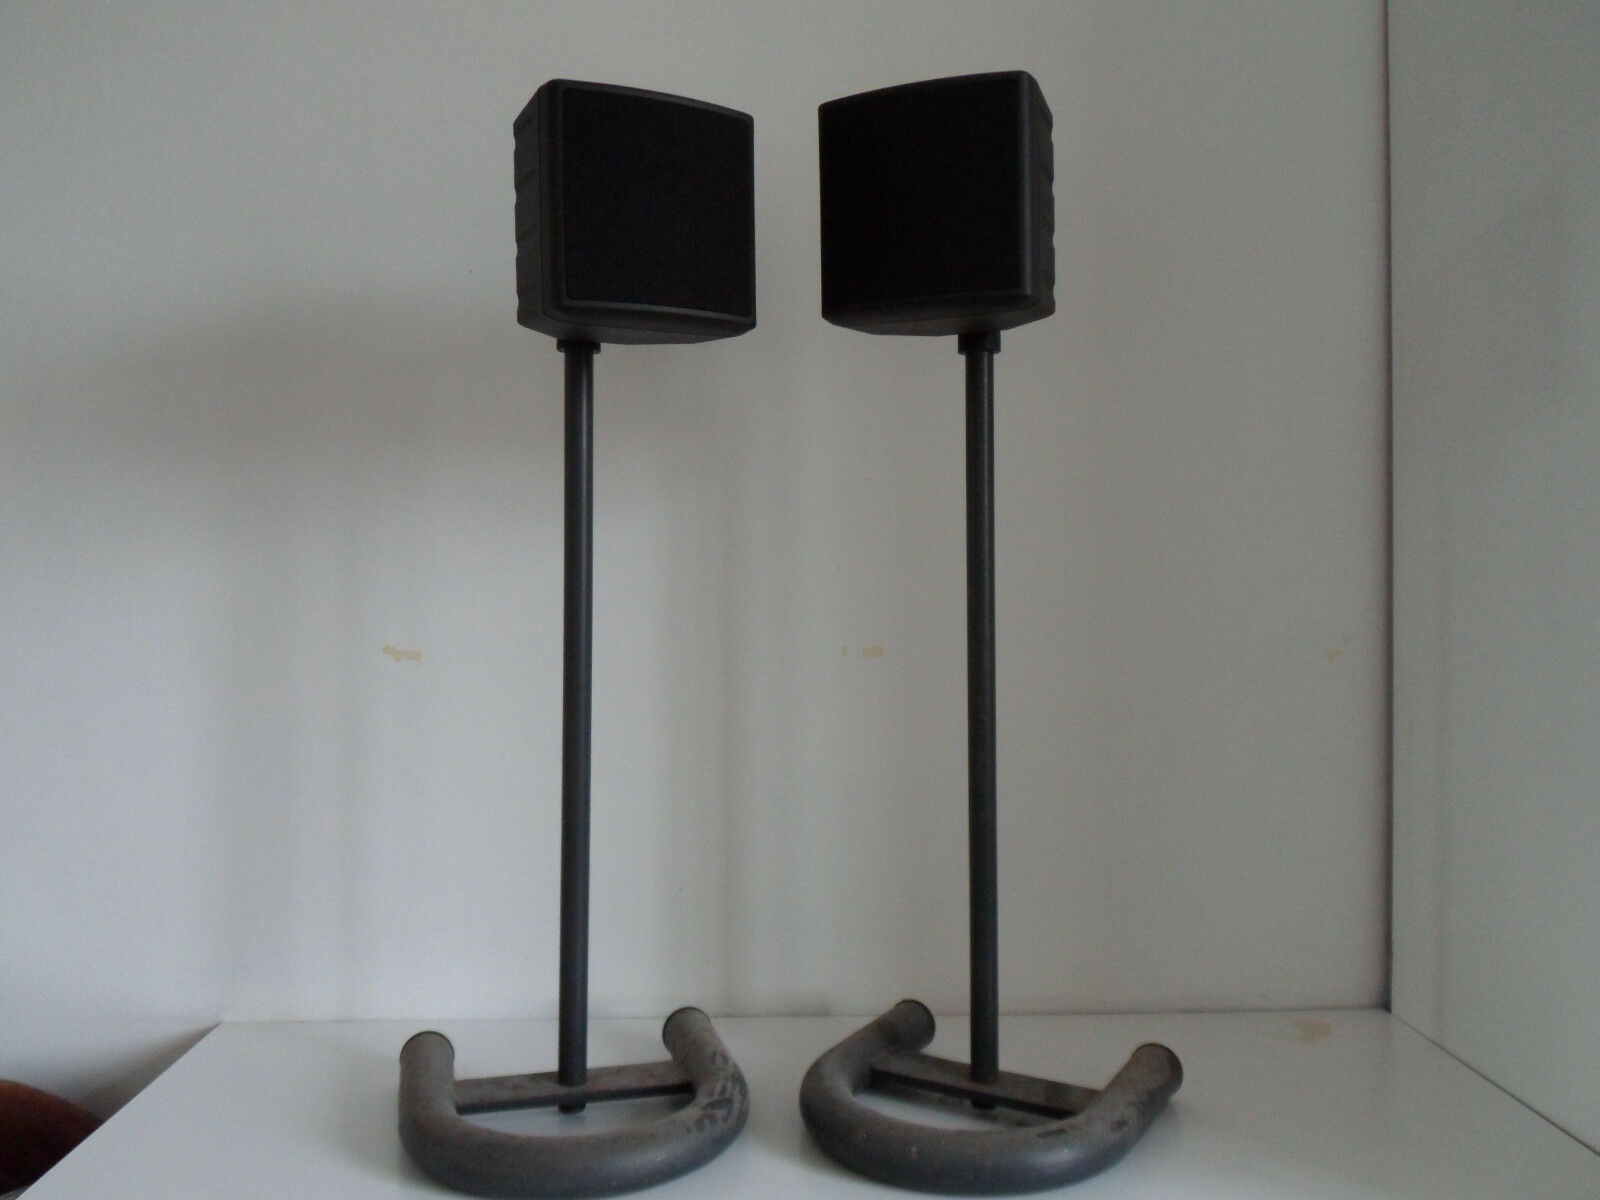 2x MITSUBISHI REAR SPEAKERS & STANDS 16 OHM, 8W 926P035A3